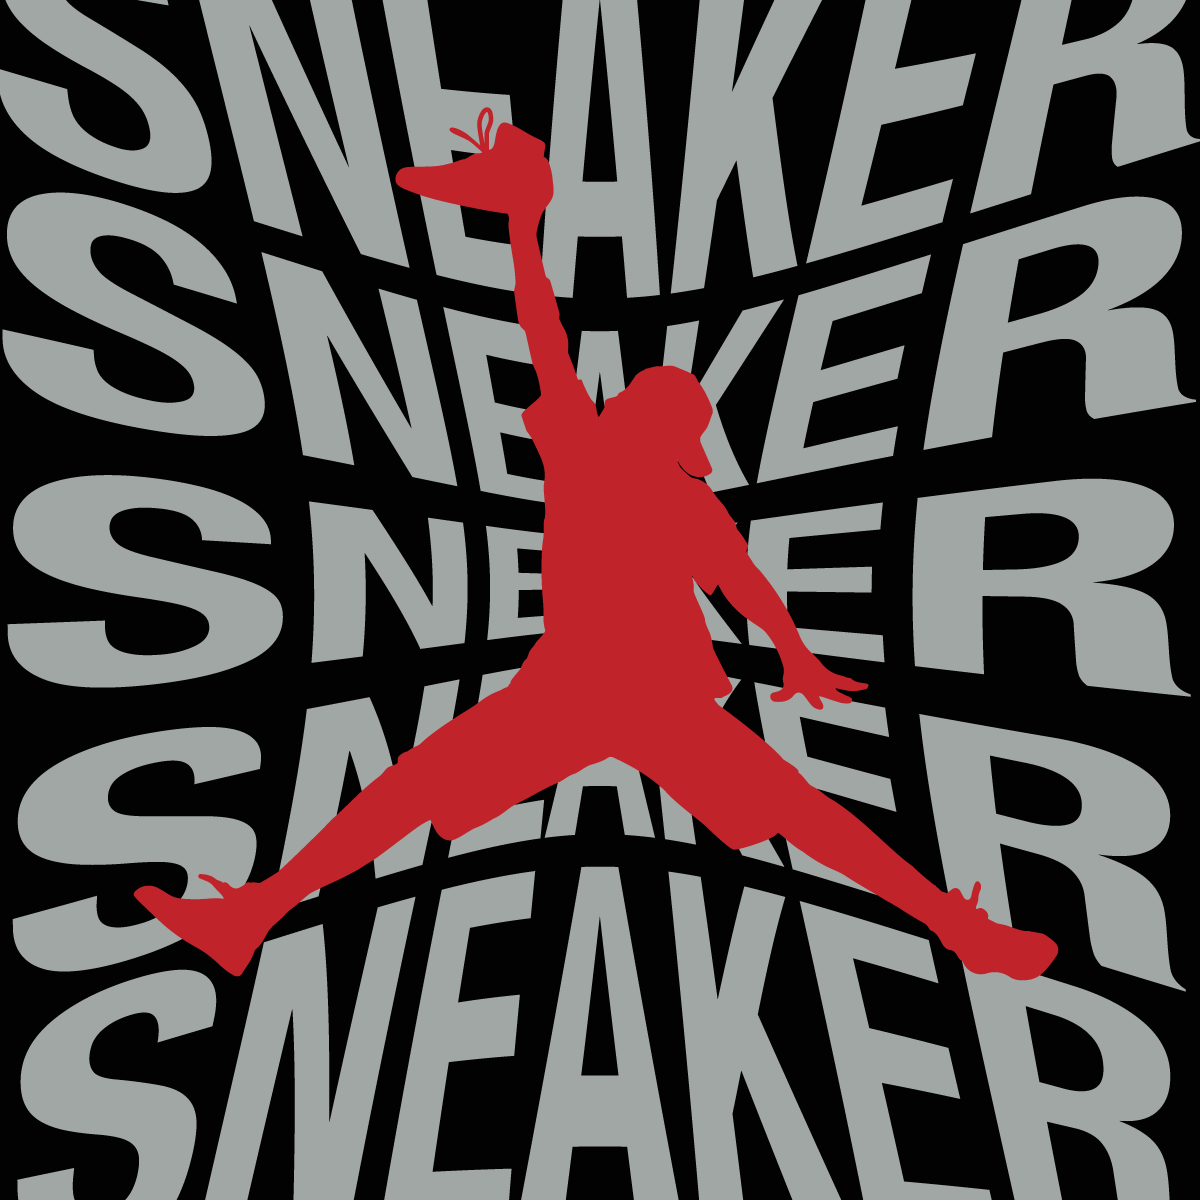 SNEAKERHEADS TEE BLACK